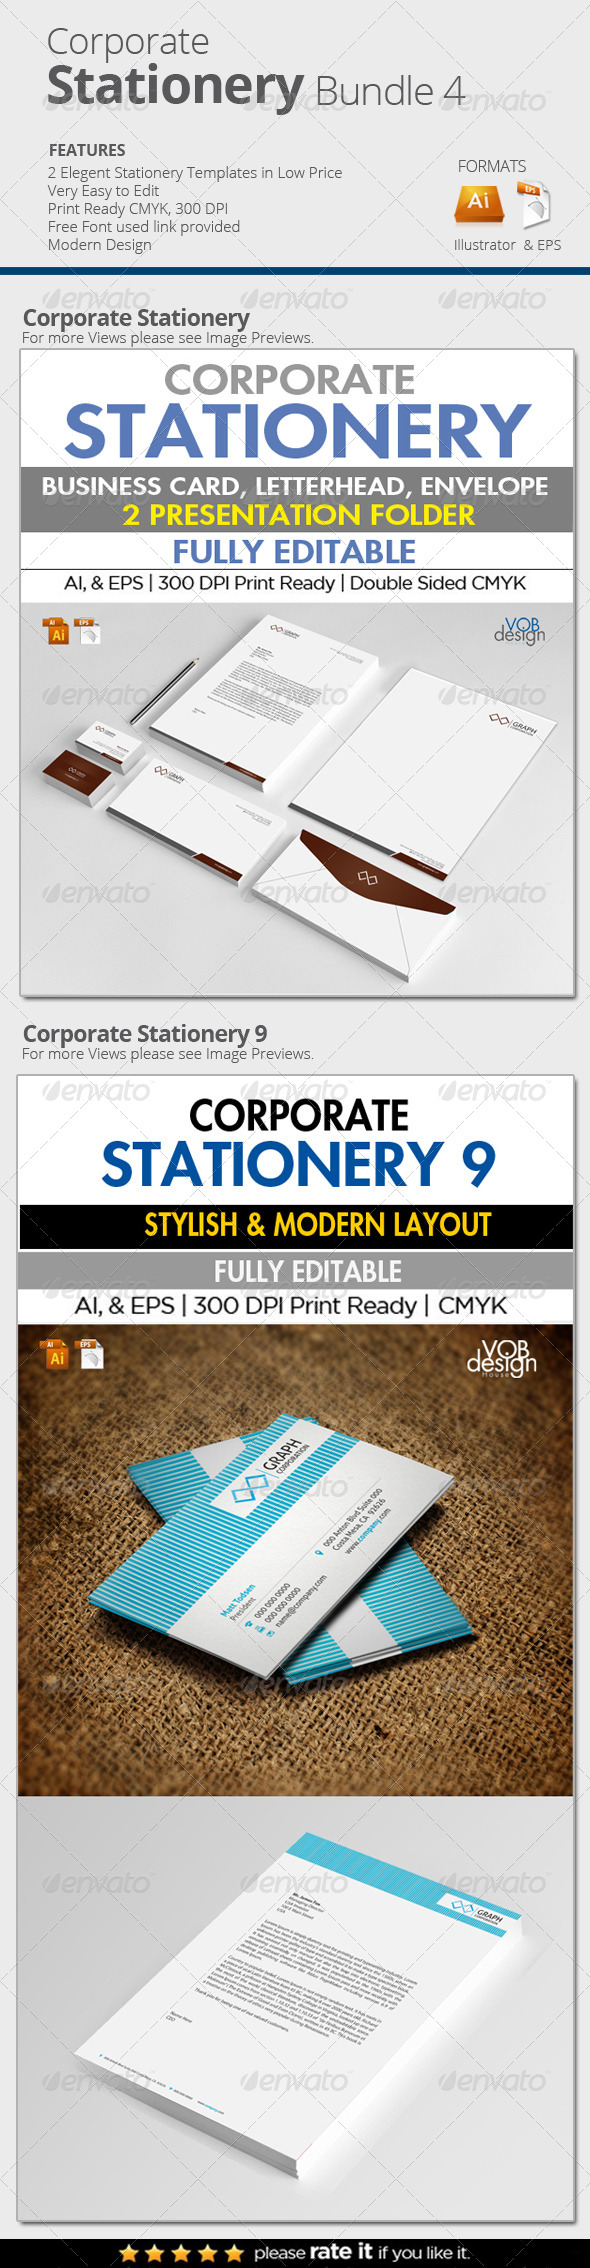 Corporate Stationery Bundle 4